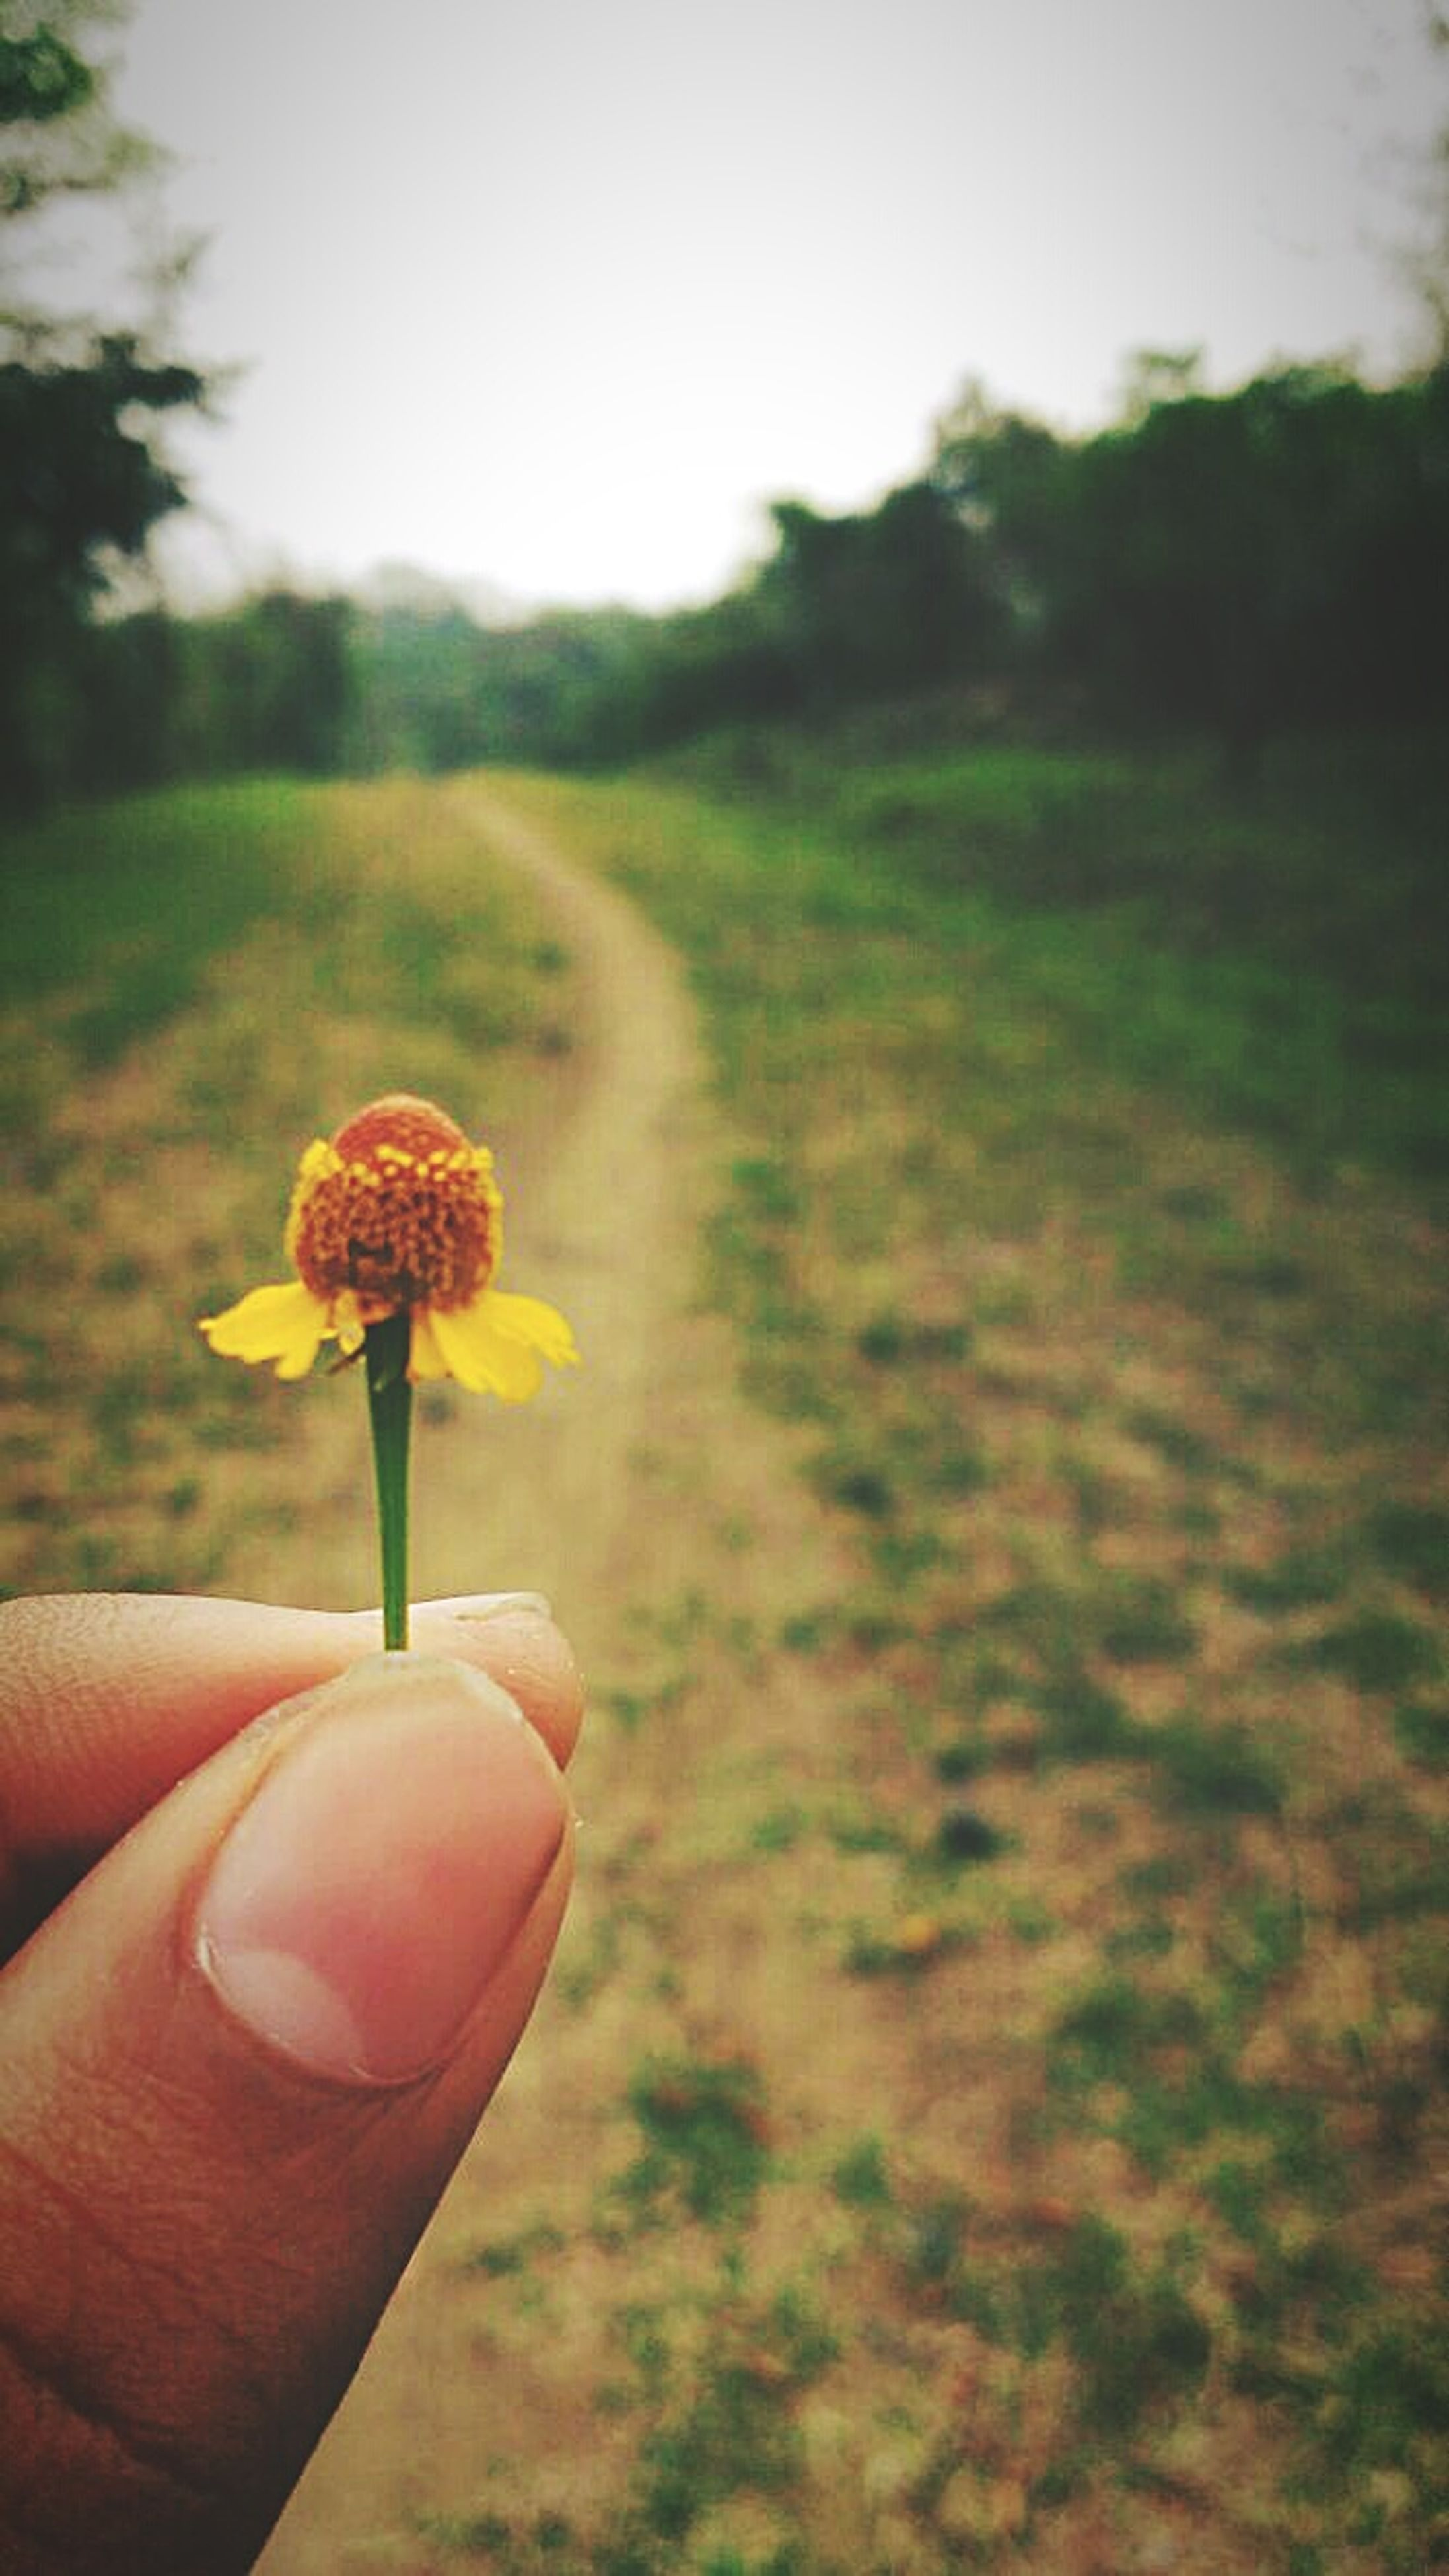 human hand, human body part, one person, field, holding, human finger, flower, nature, personal perspective, real people, landscape, unrecognizable person, plant, focus on foreground, beauty in nature, outdoors, poppy, growth, uncultivated, lifestyles, flower head, sky, close-up, wheat, day, tree, freshness, people